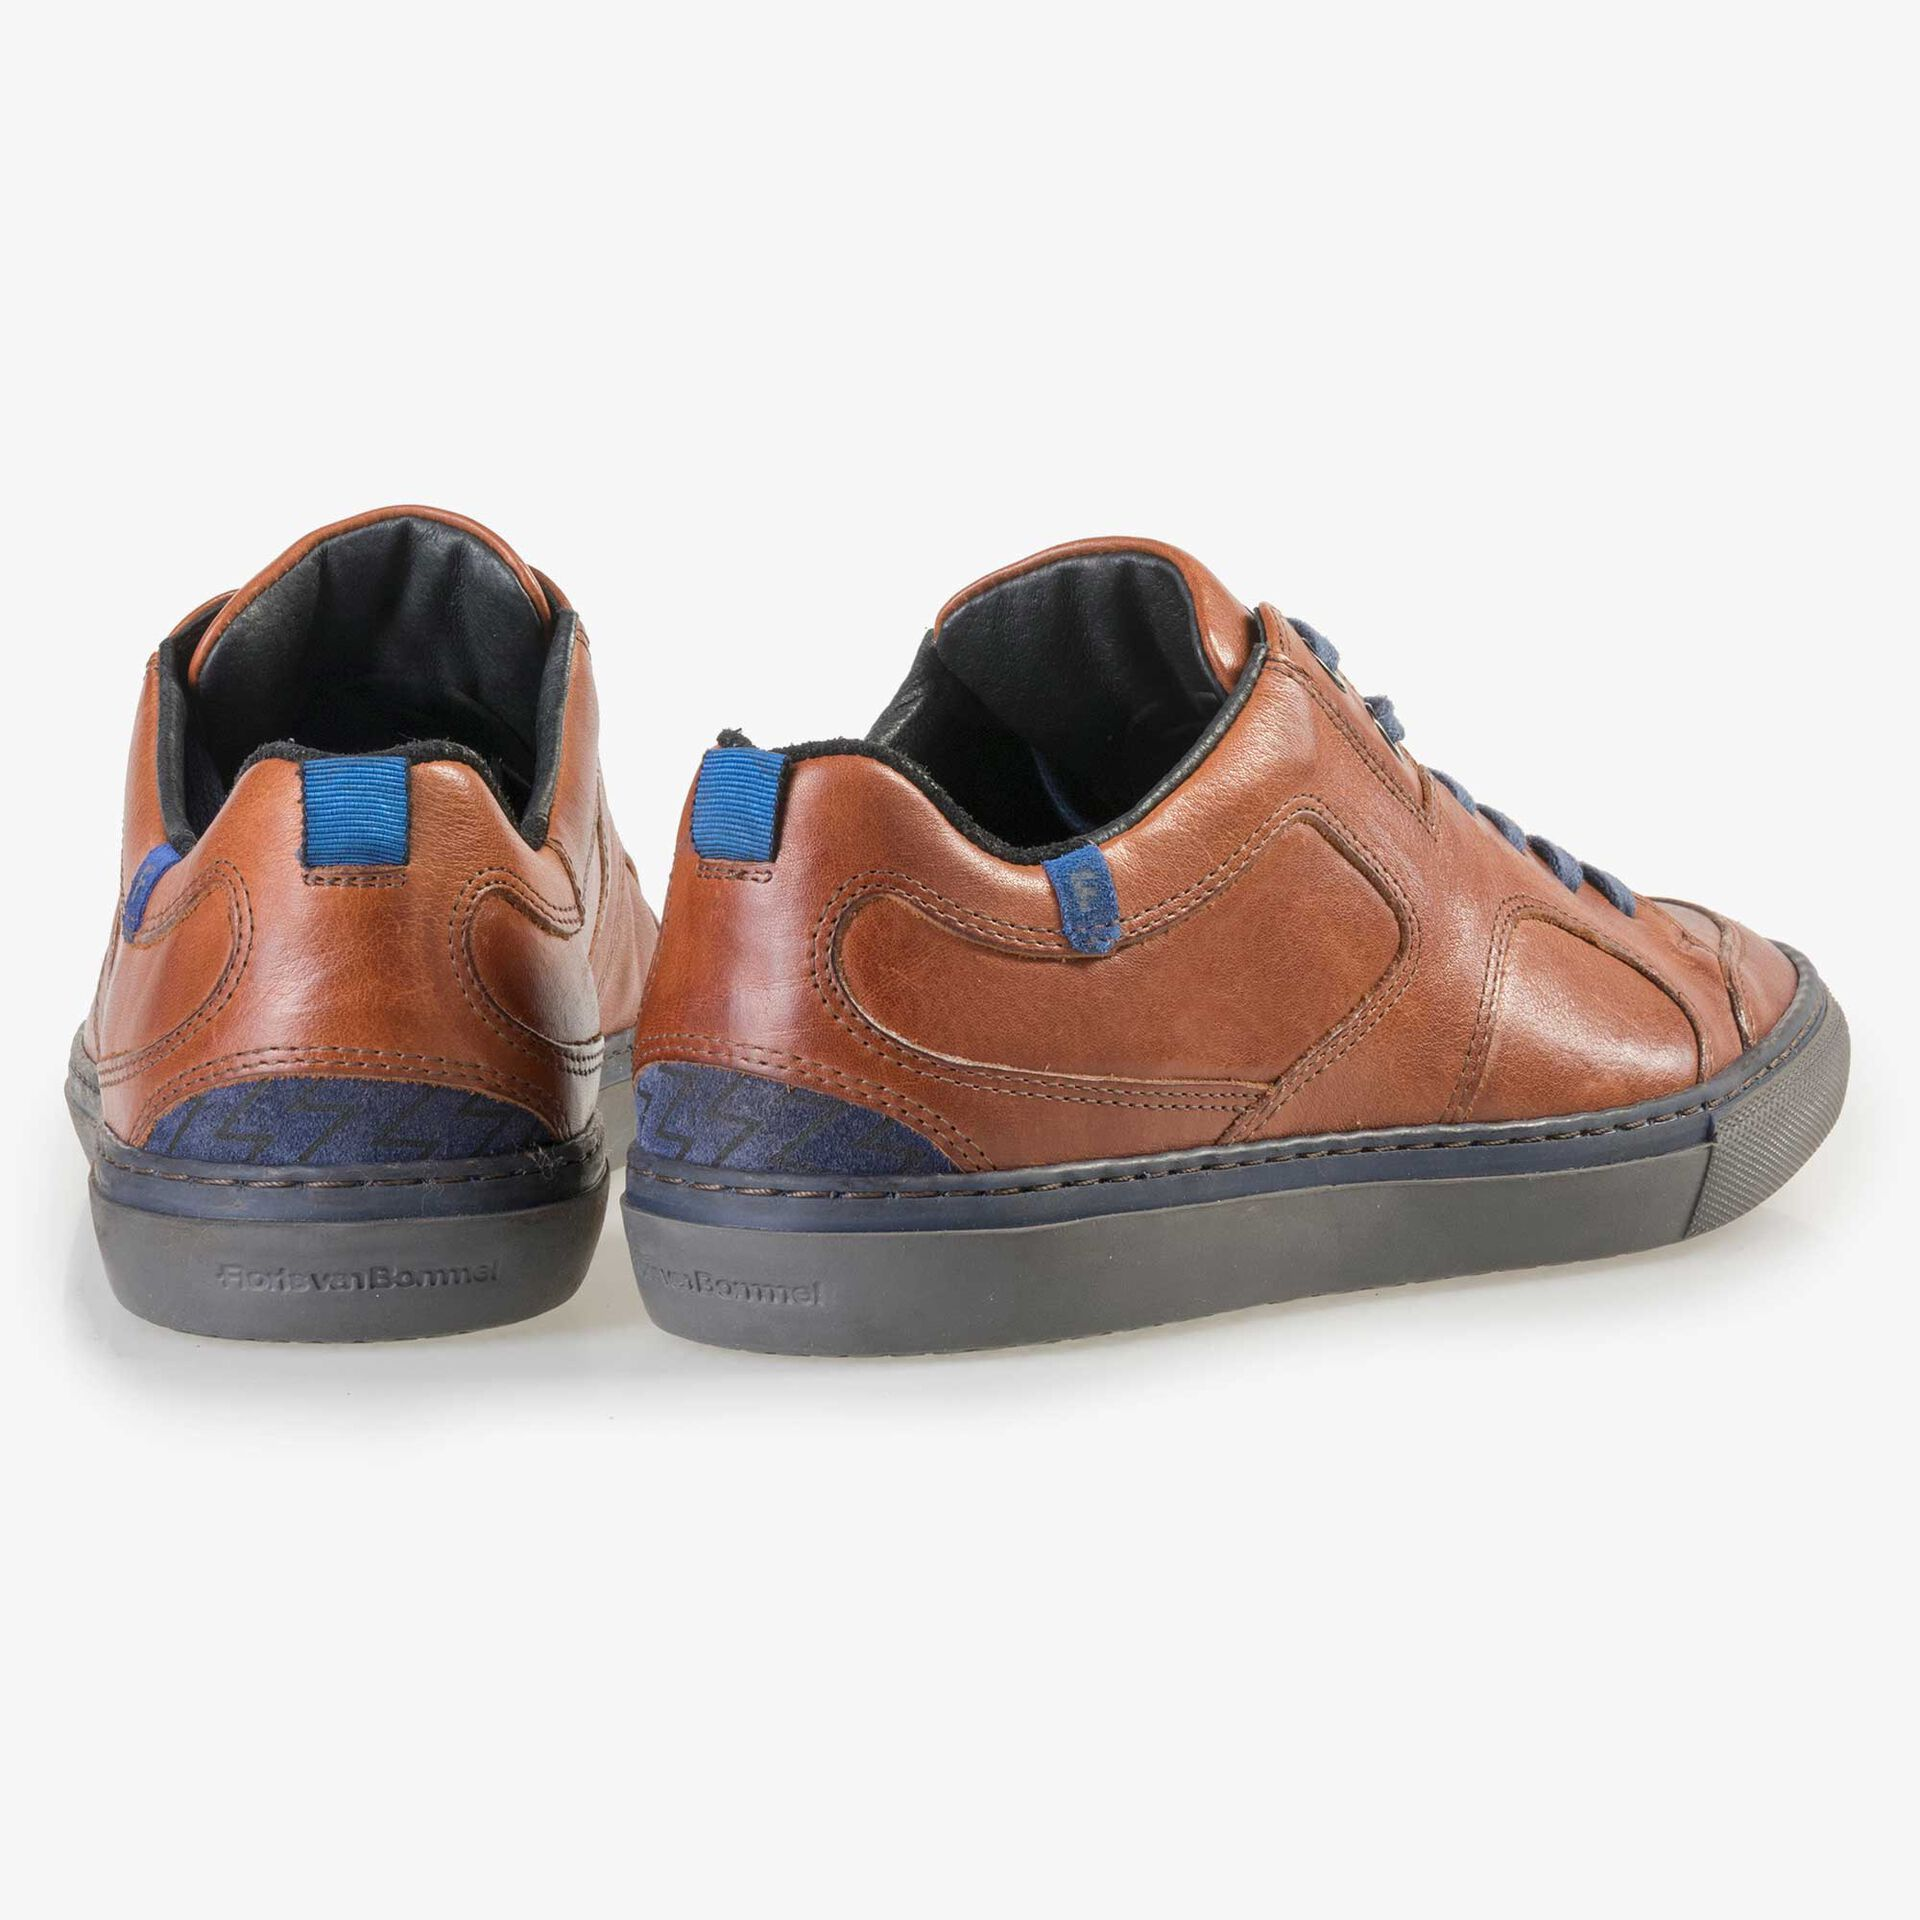 Floris van Bommel men's cognac-coloured leather sneaker